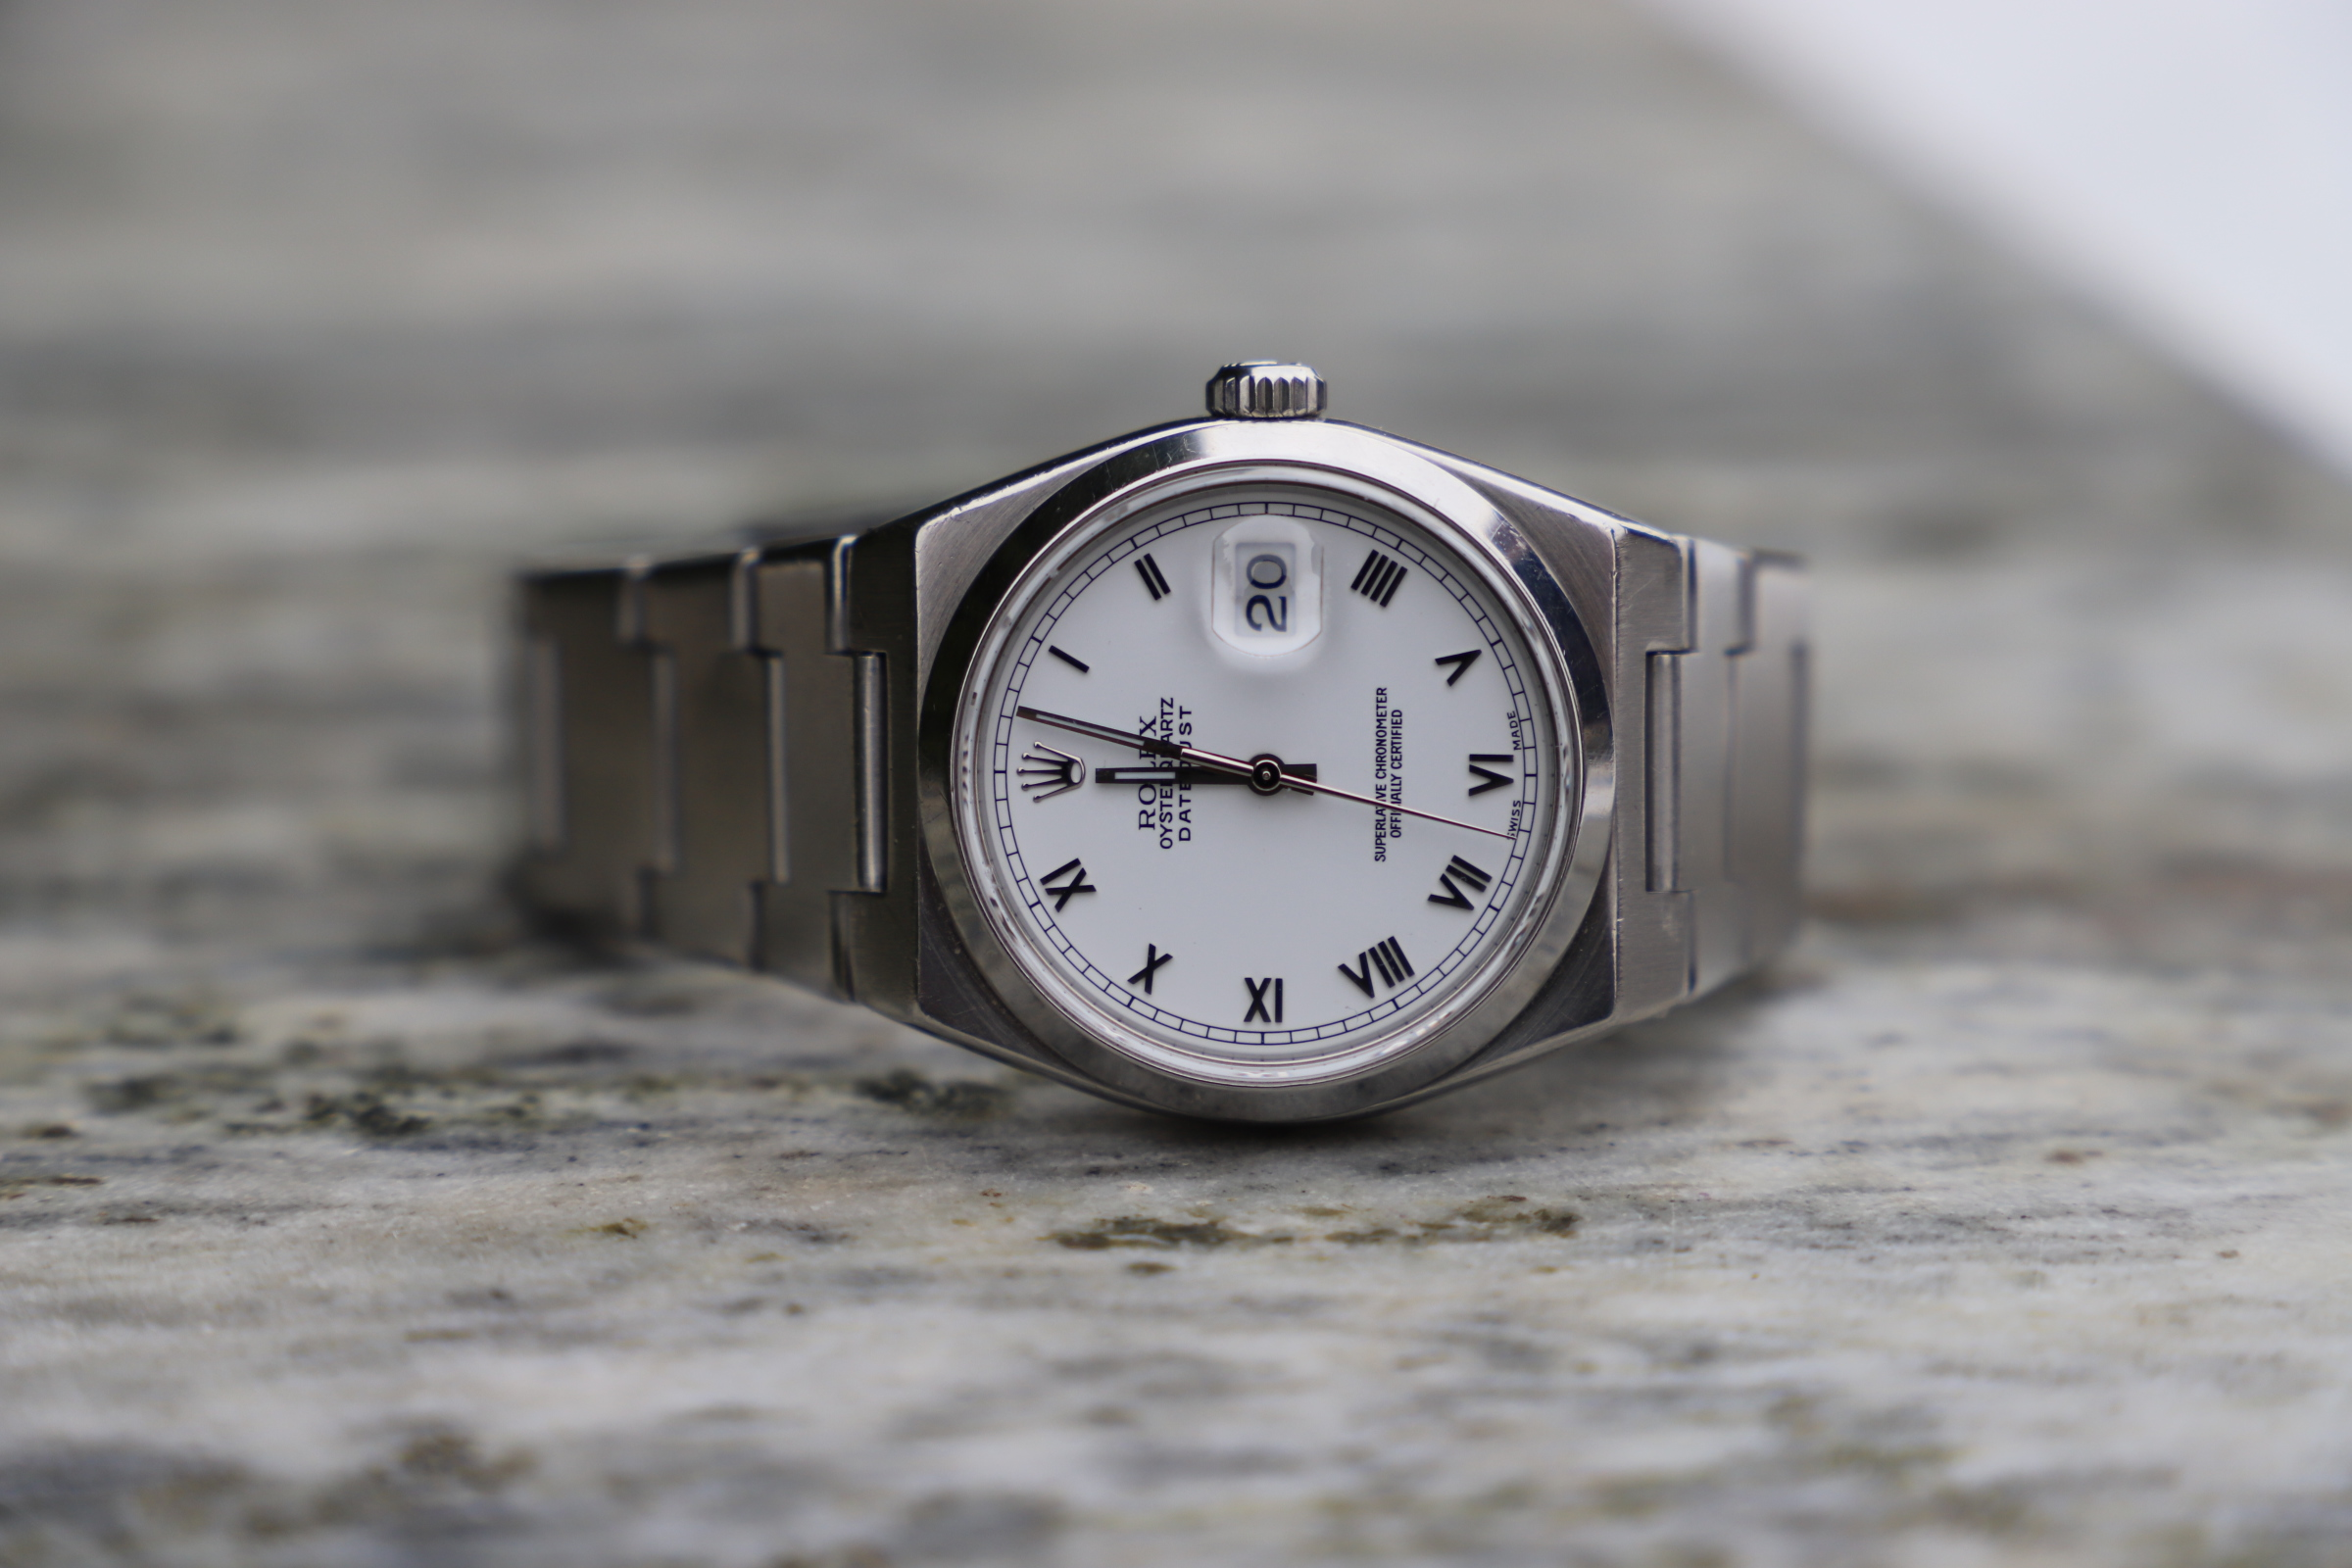 Rolex OysterQuartz Datejust Reference 17000